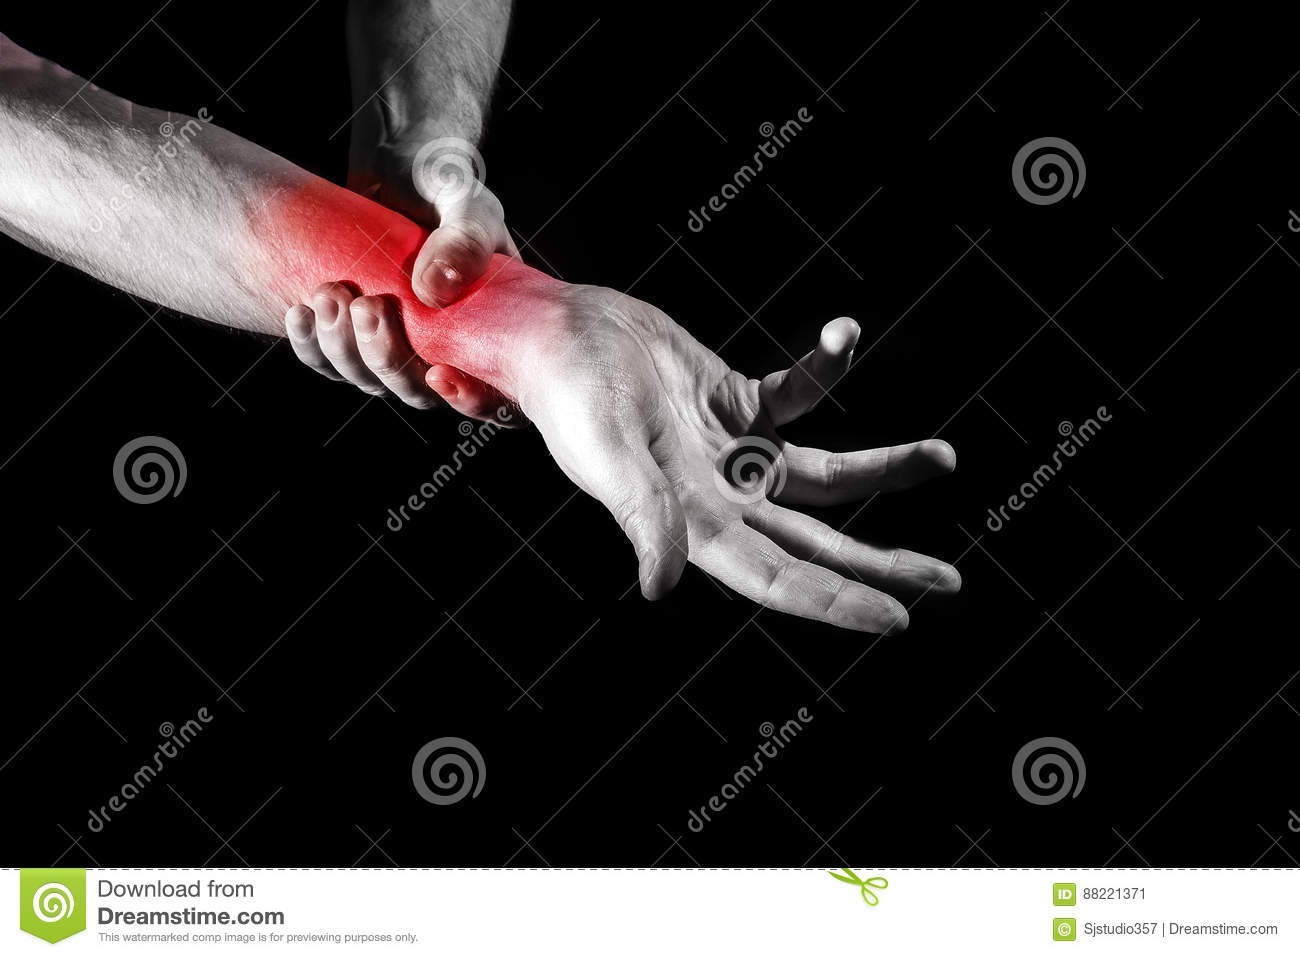 A man, a woman holding her painful wrist, experiencing pain, a